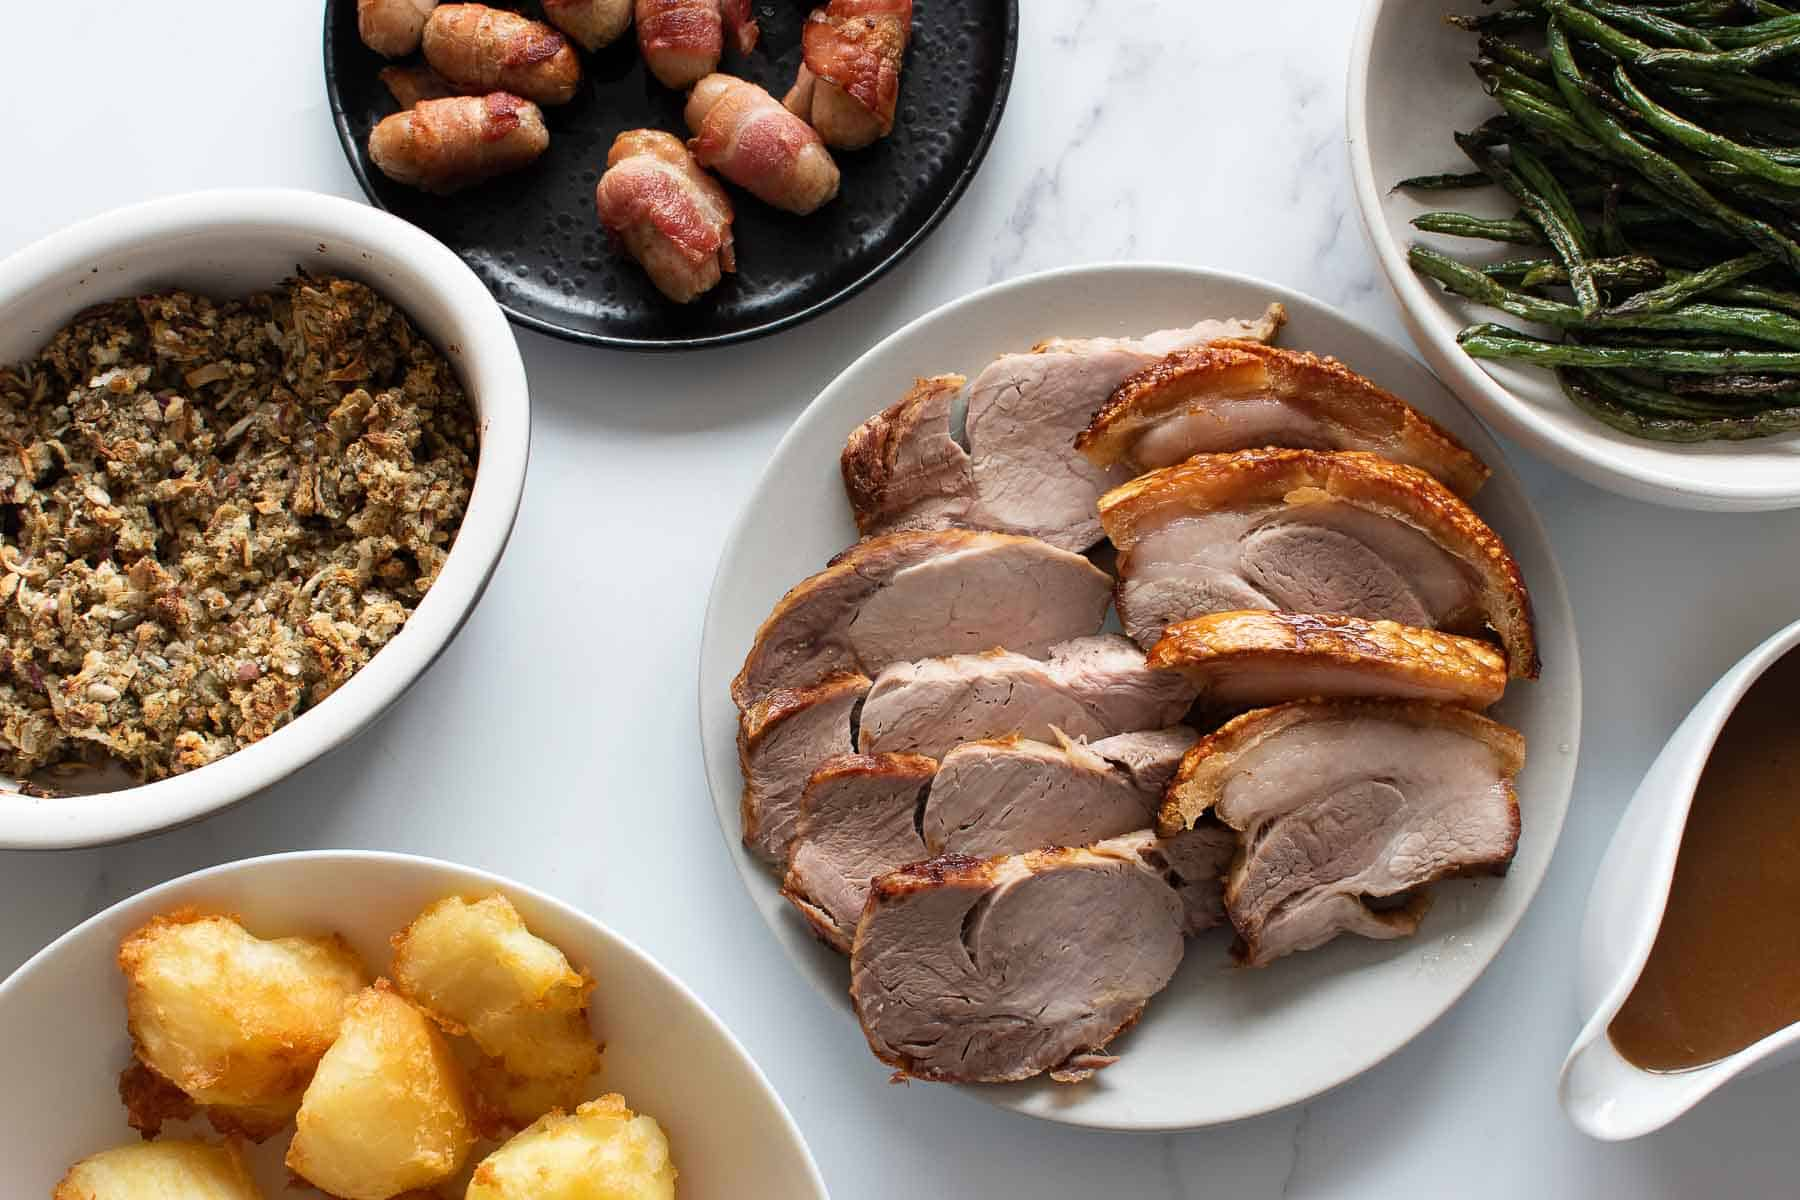 Sliced pork roast on a plate surrounded by side dishes.